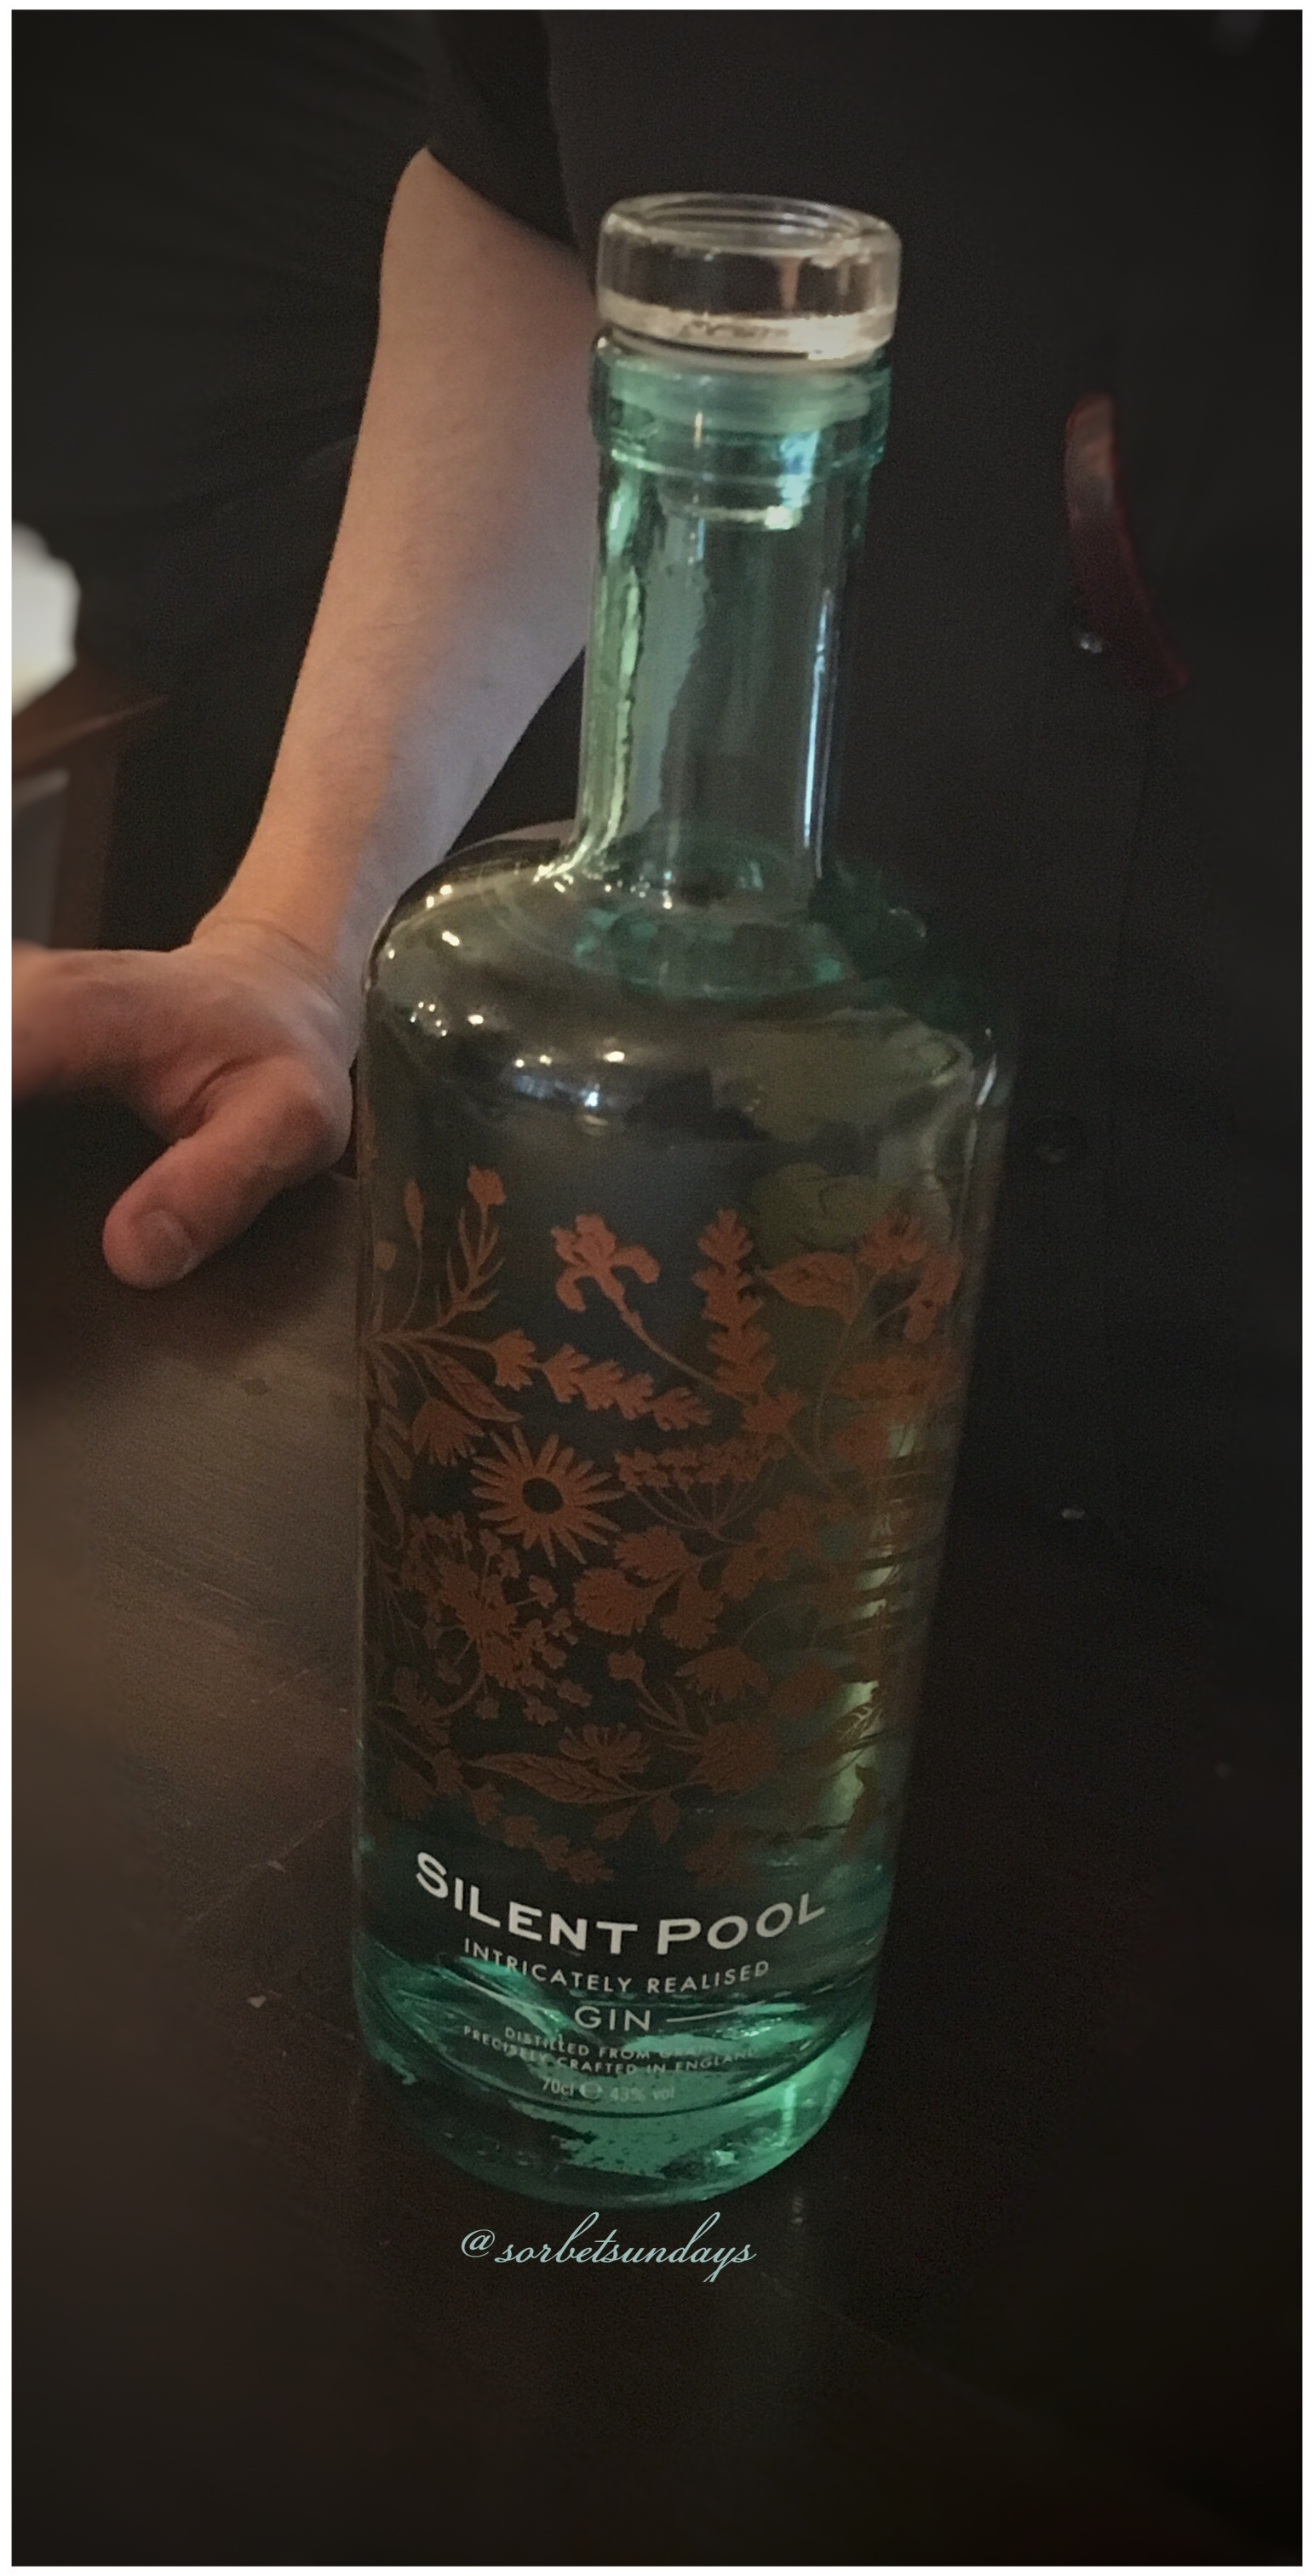 Girl about london town rivington shoreditch bar and grill - Silent pool gin ...